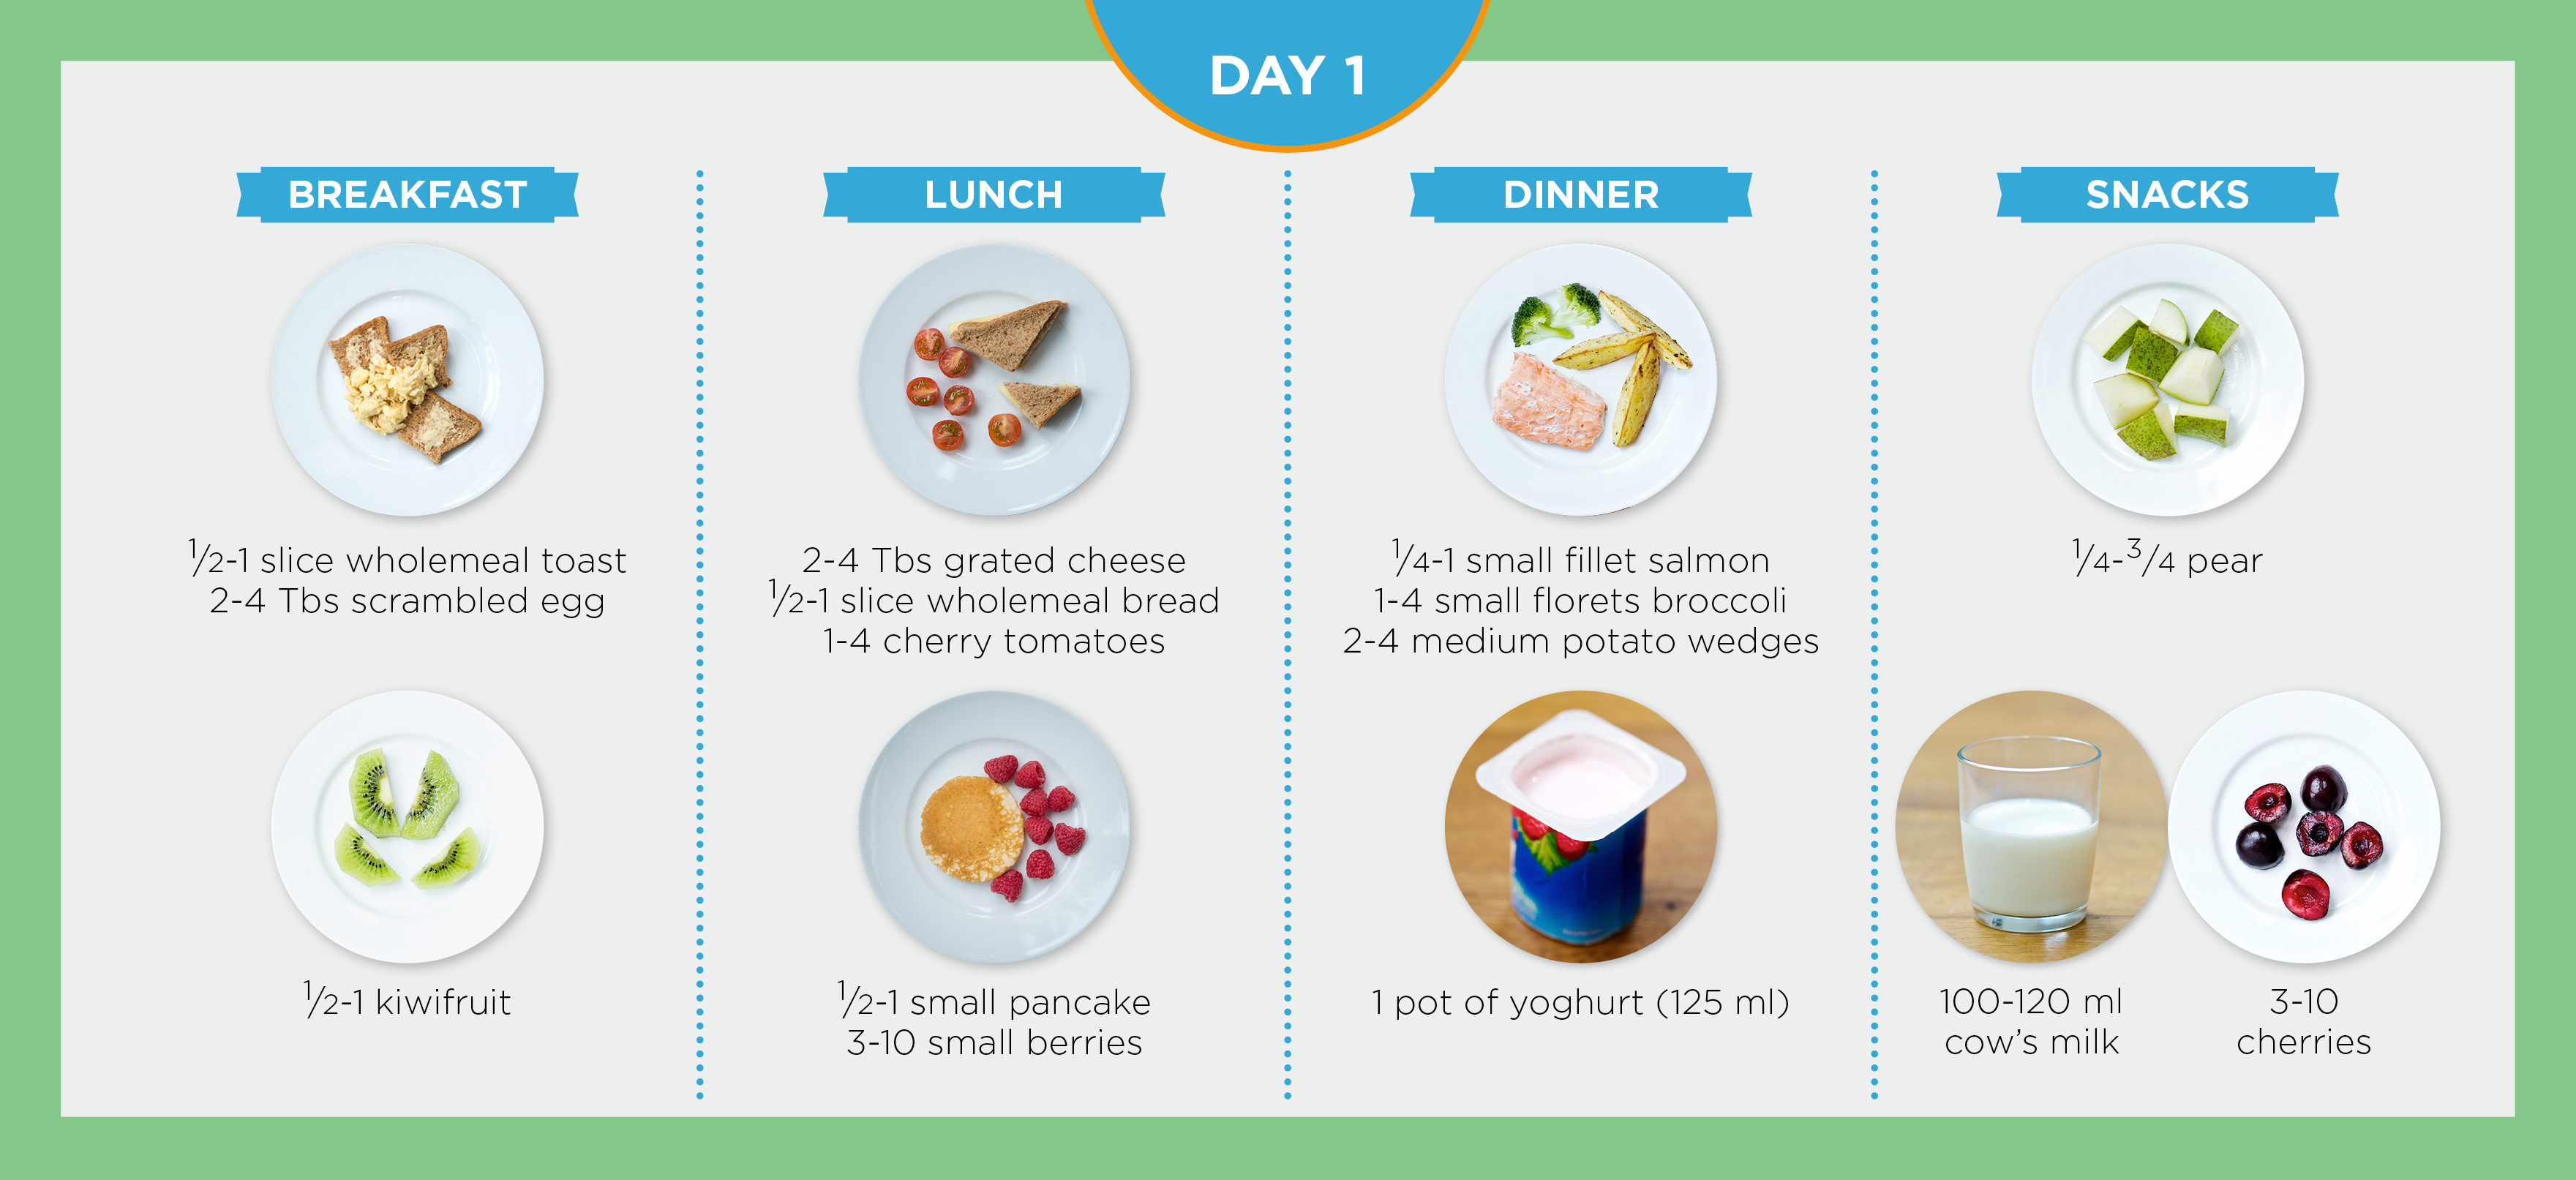 A diagram shows a day's suggested toddler meals